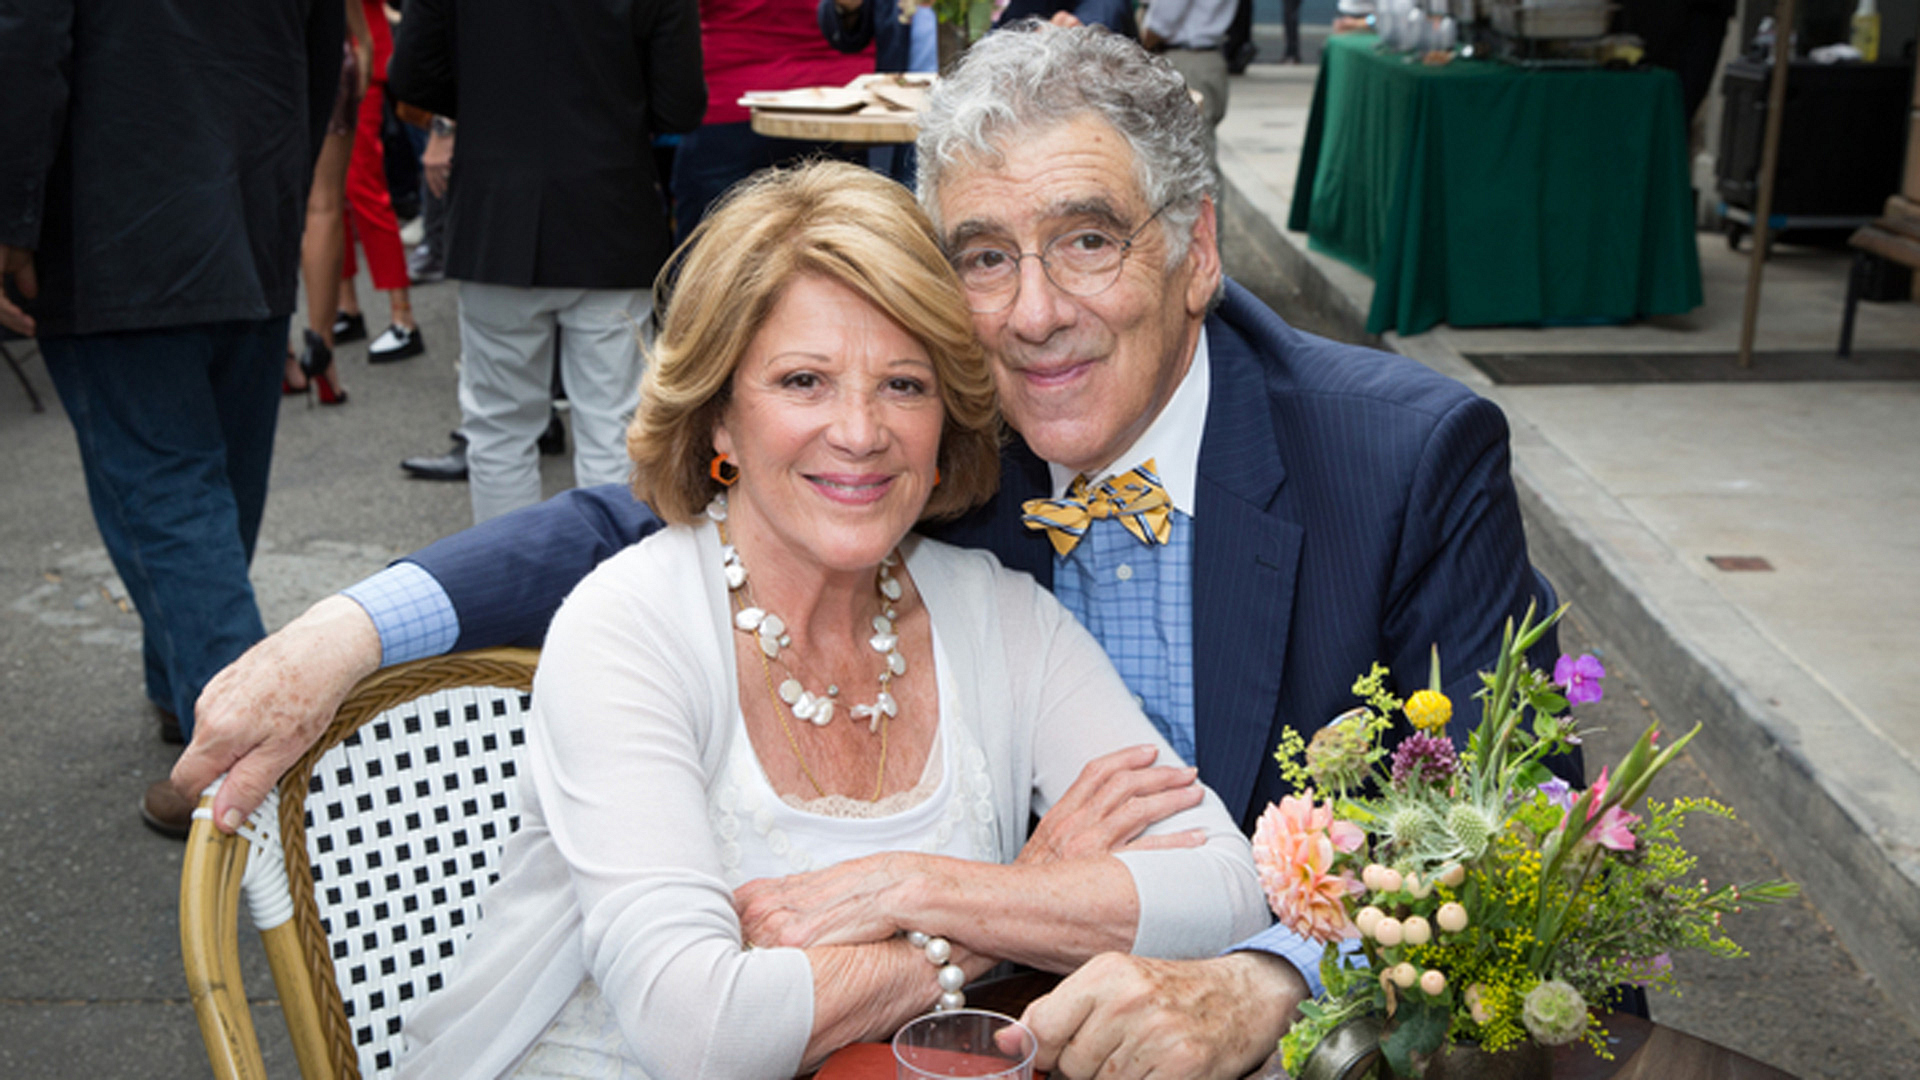 Linda Lavin and Elliott Gould (9JKL)